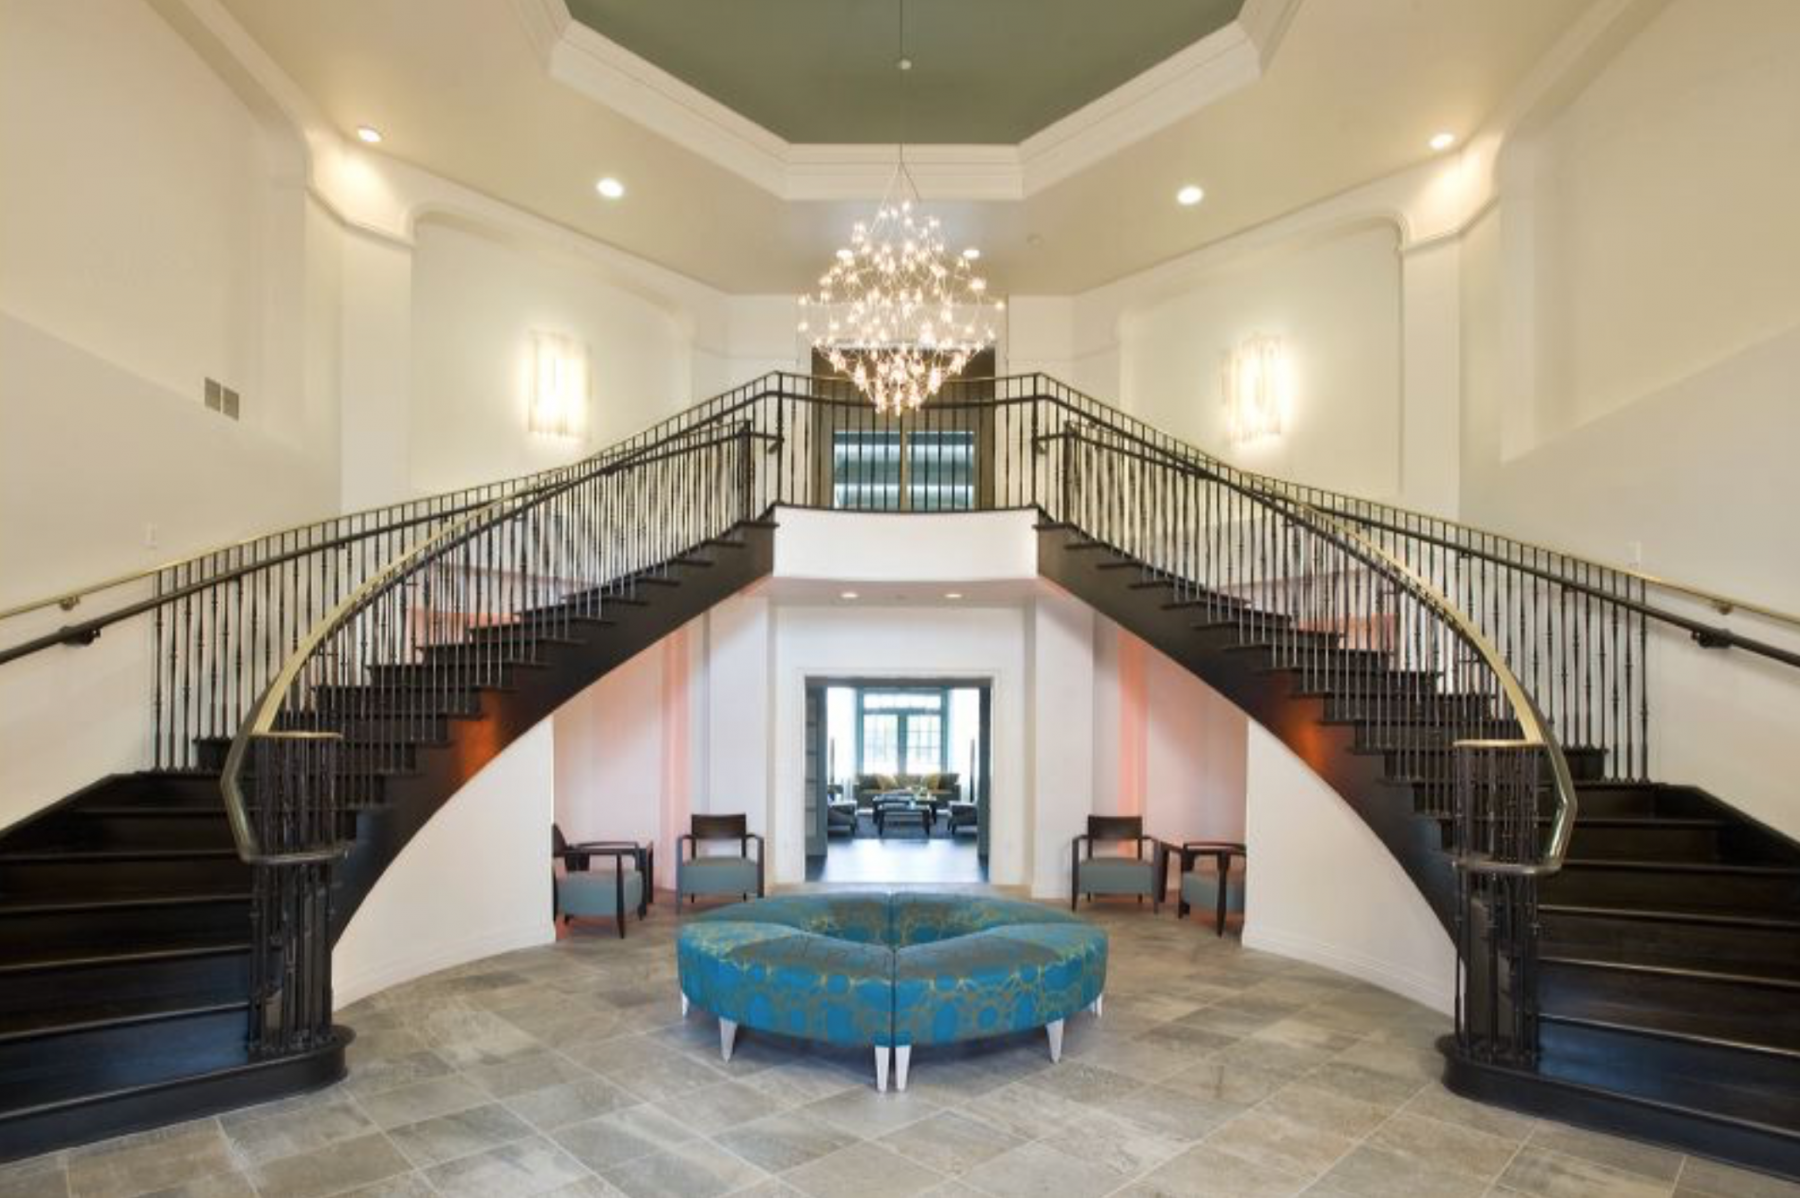 2 - Clubhouse Entry Stair